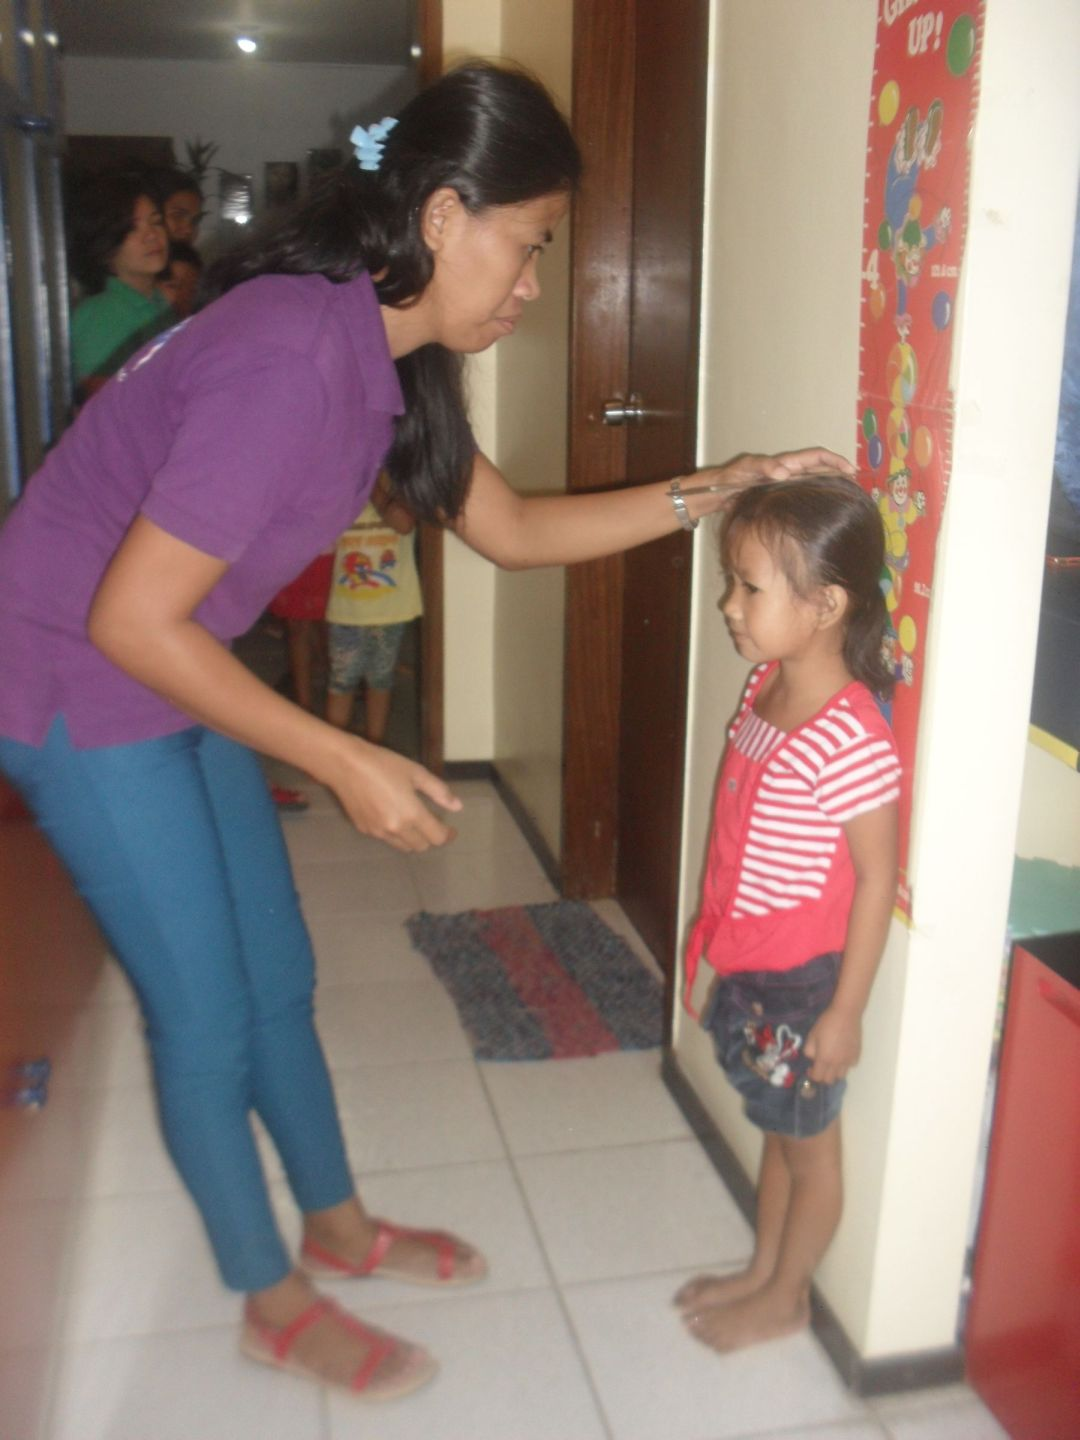 Height and-weight measurement for Feeding Program